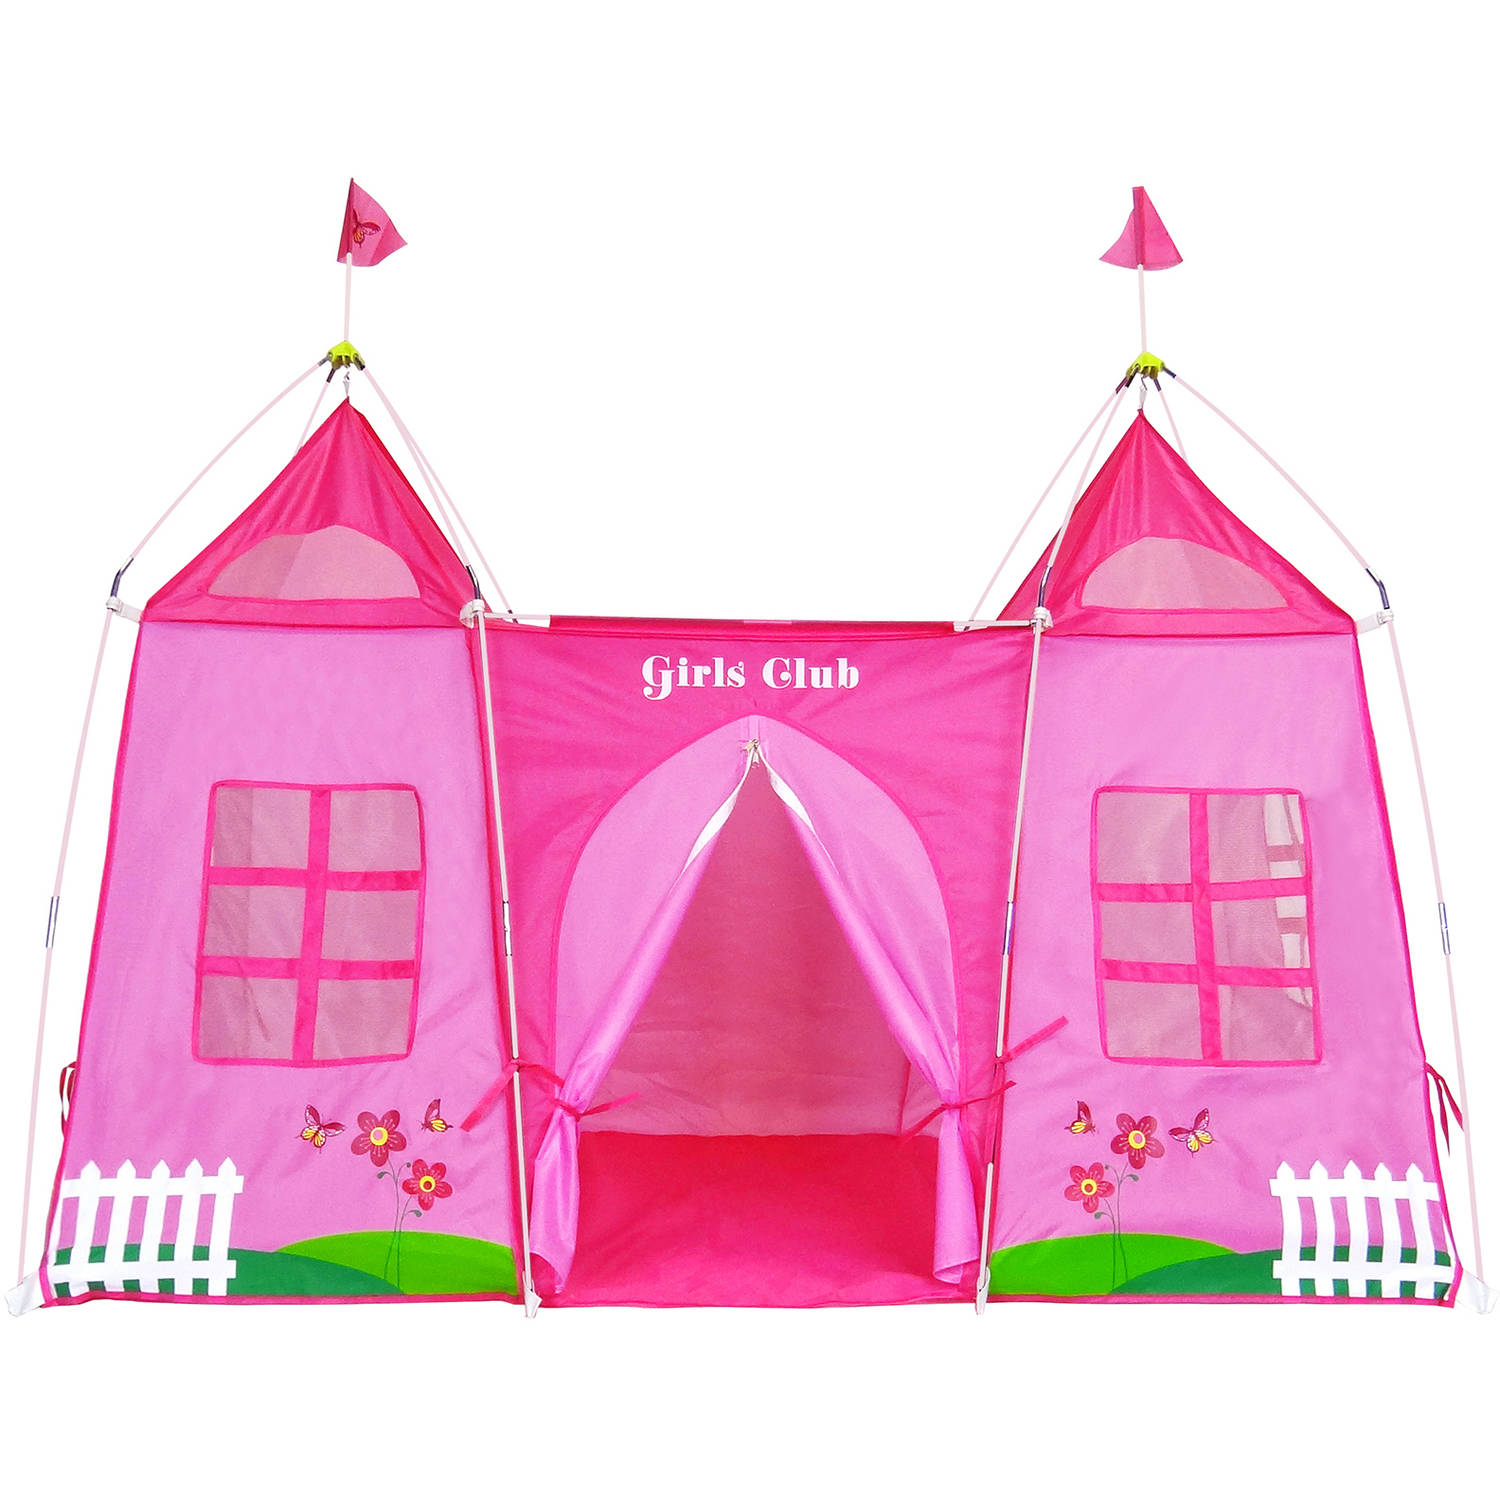 GigaTent Girls Club Pink Play Tent